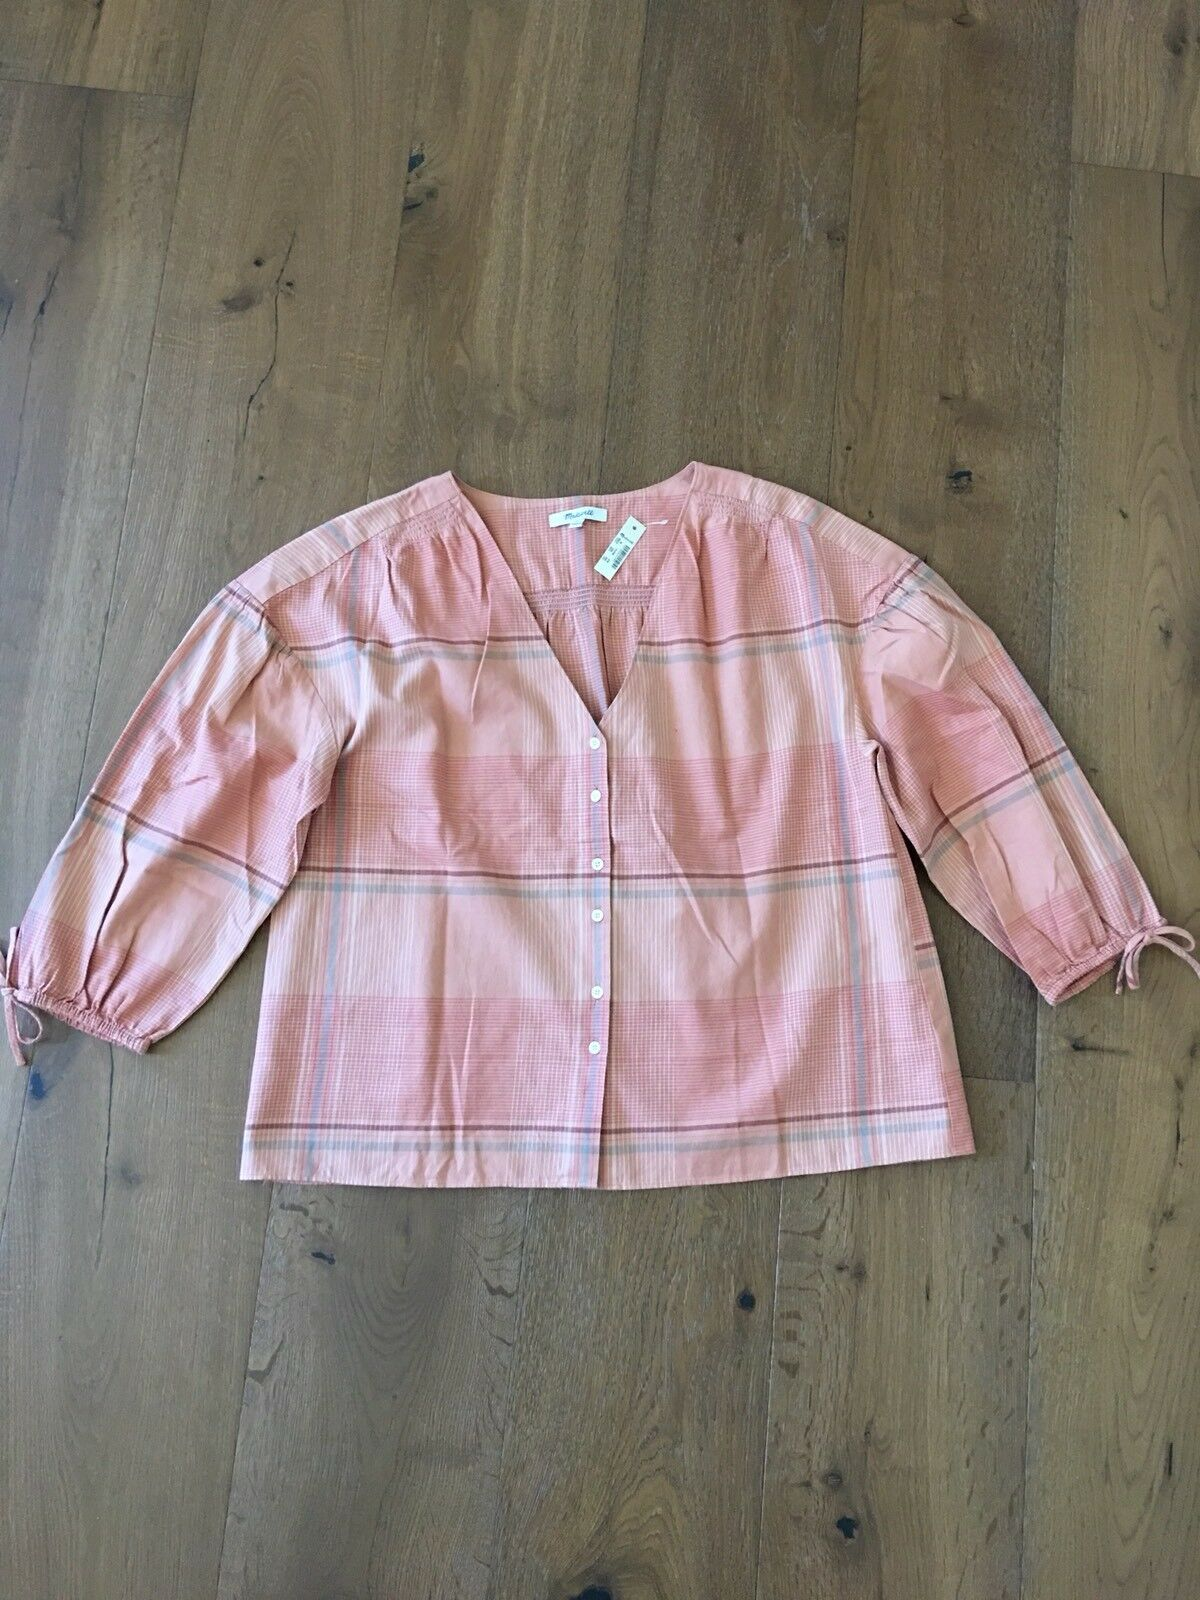 Authentic  MADEWELL Blouse Top Größe Medium NWT